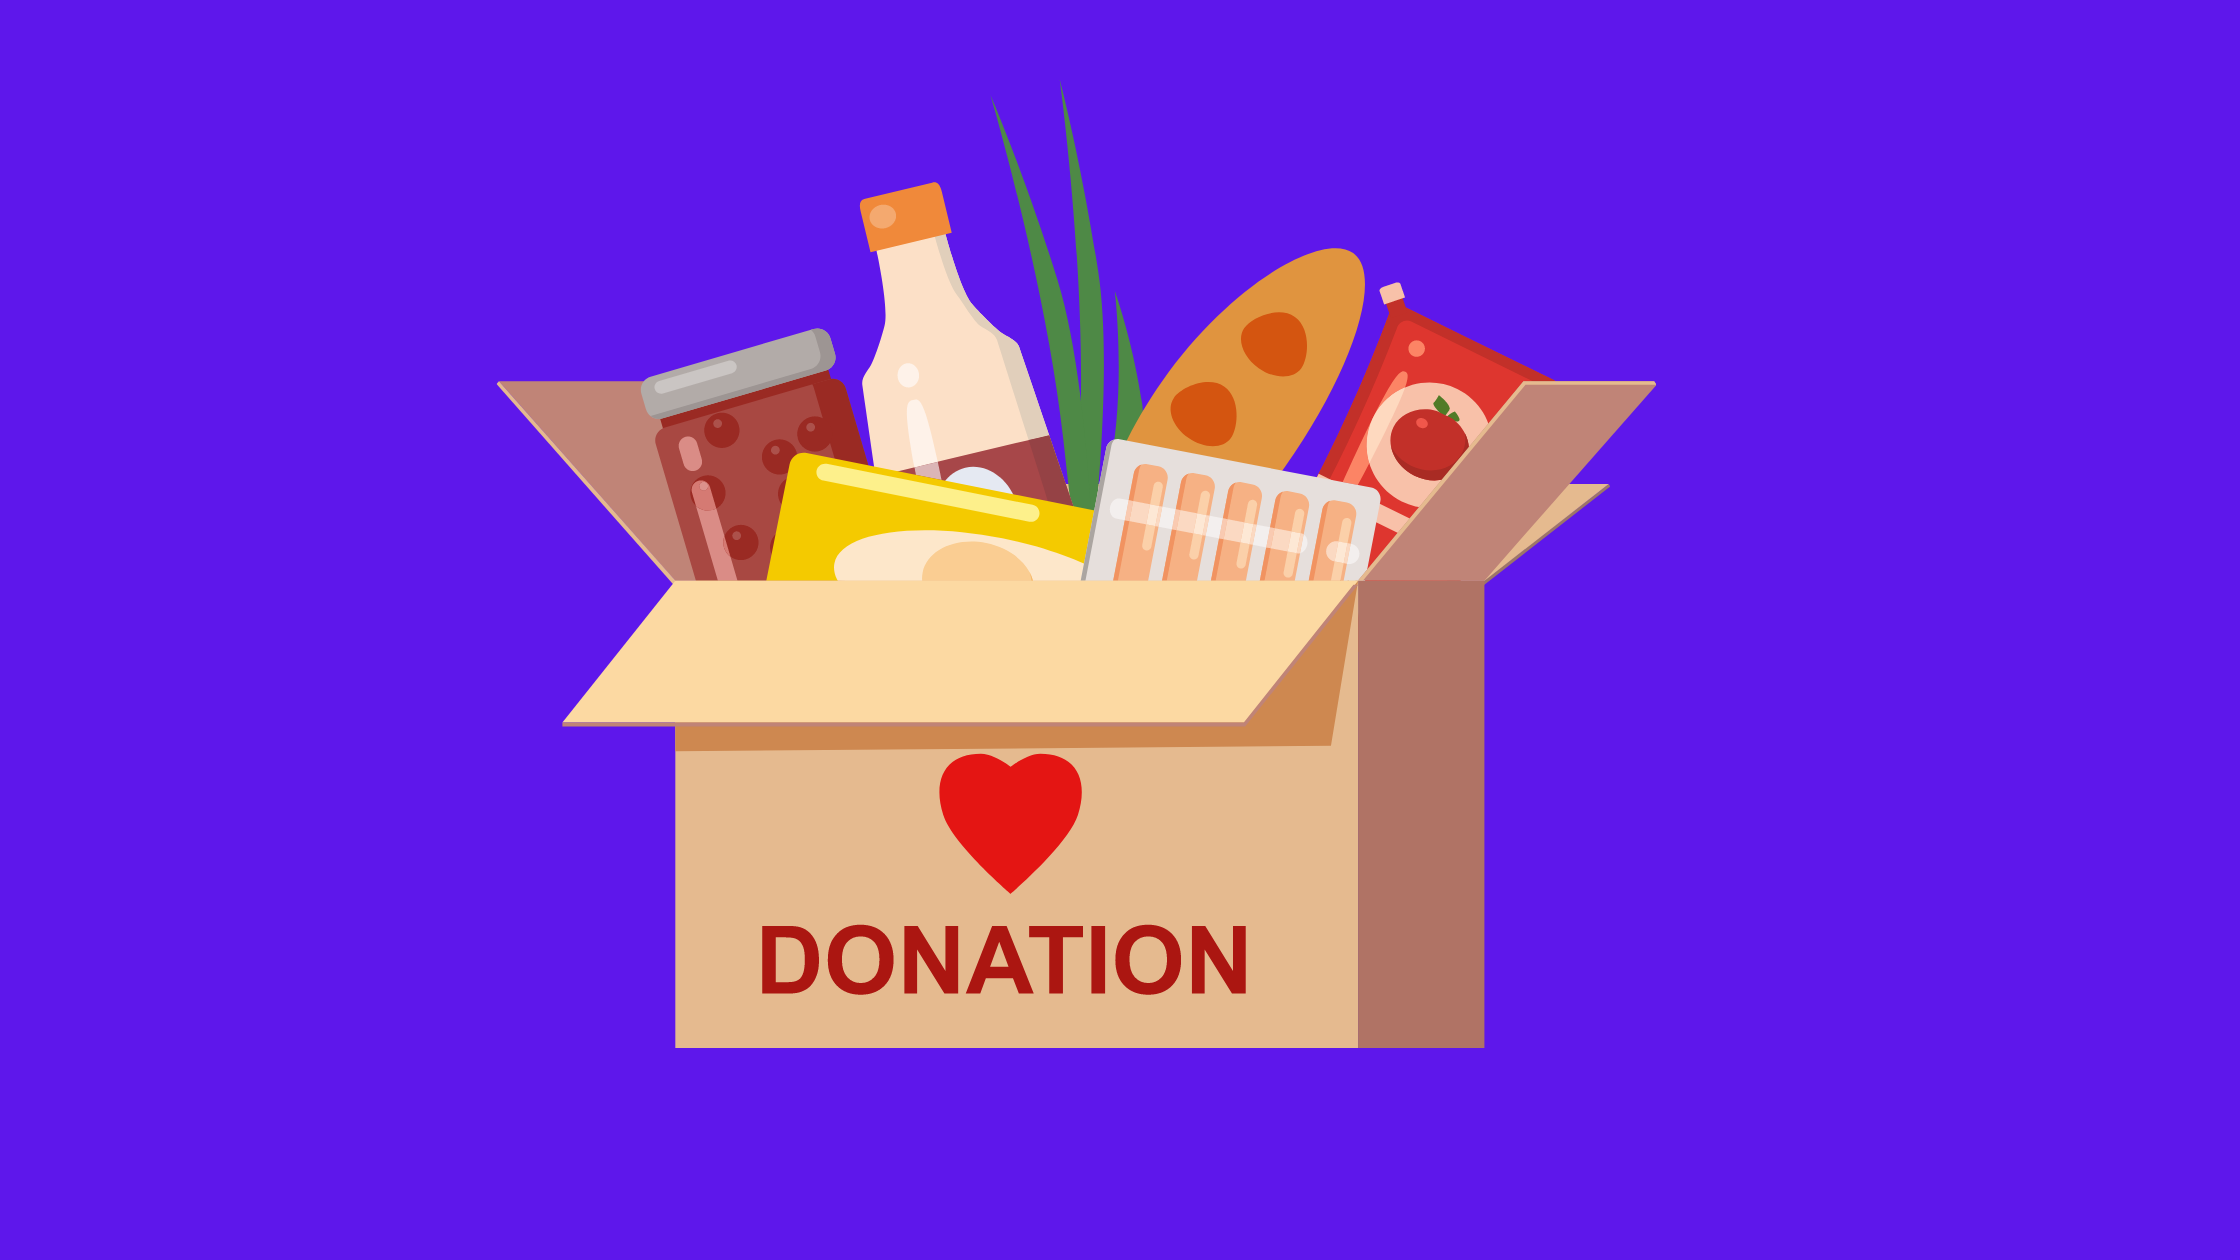 illustration of a food donation box with food sticking out of the top